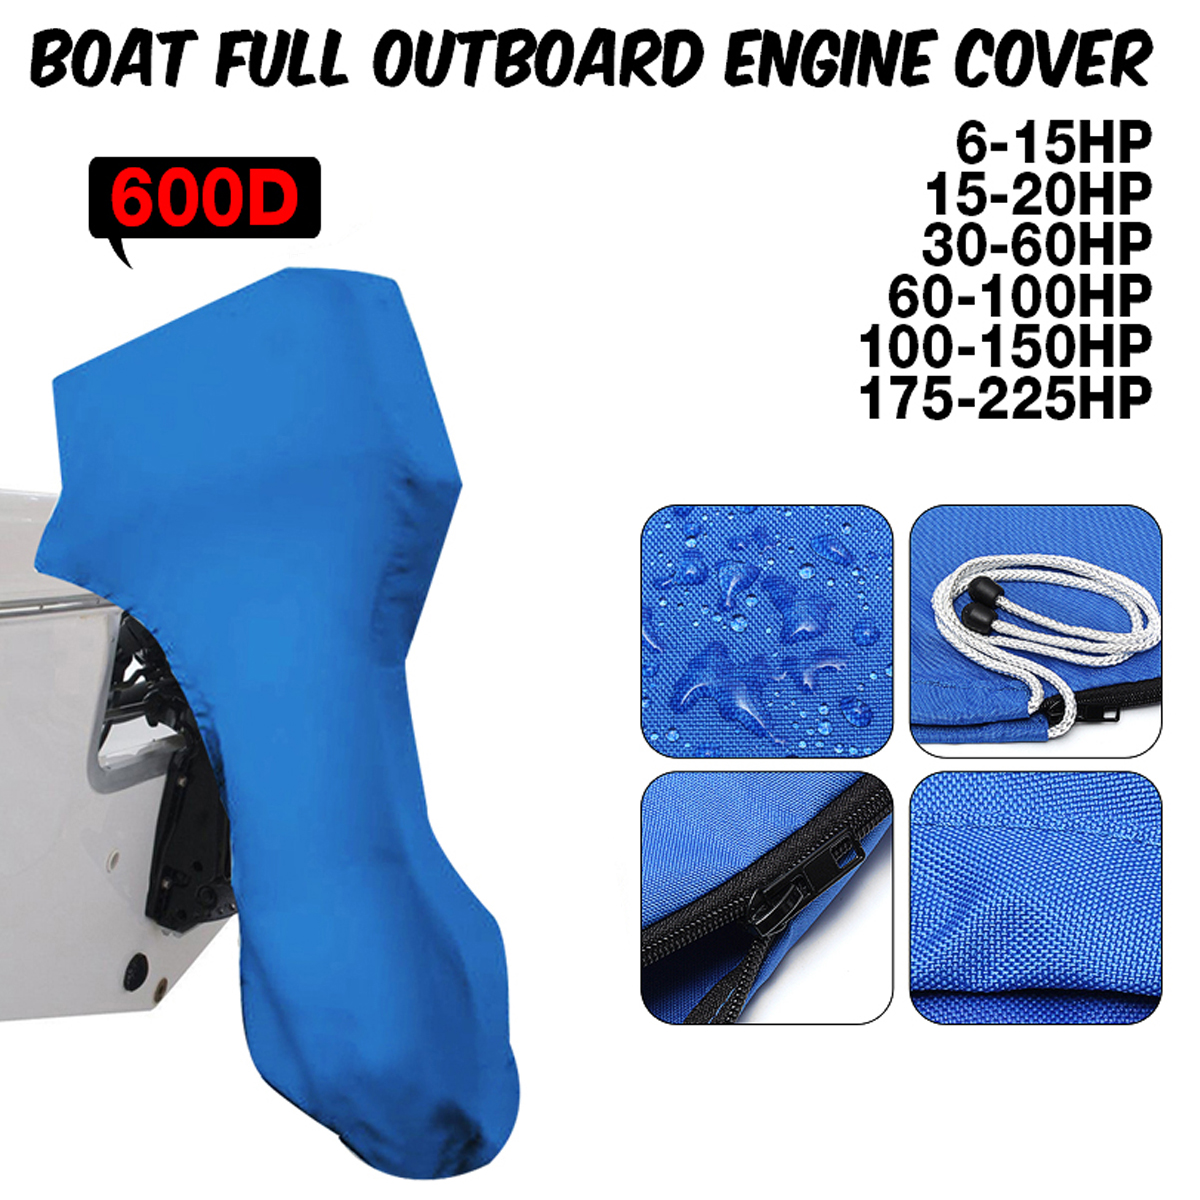 600D Boat Full Outboard Engine Cover Engine Motor Covers Protector Blue For 6-225HP Waterproof